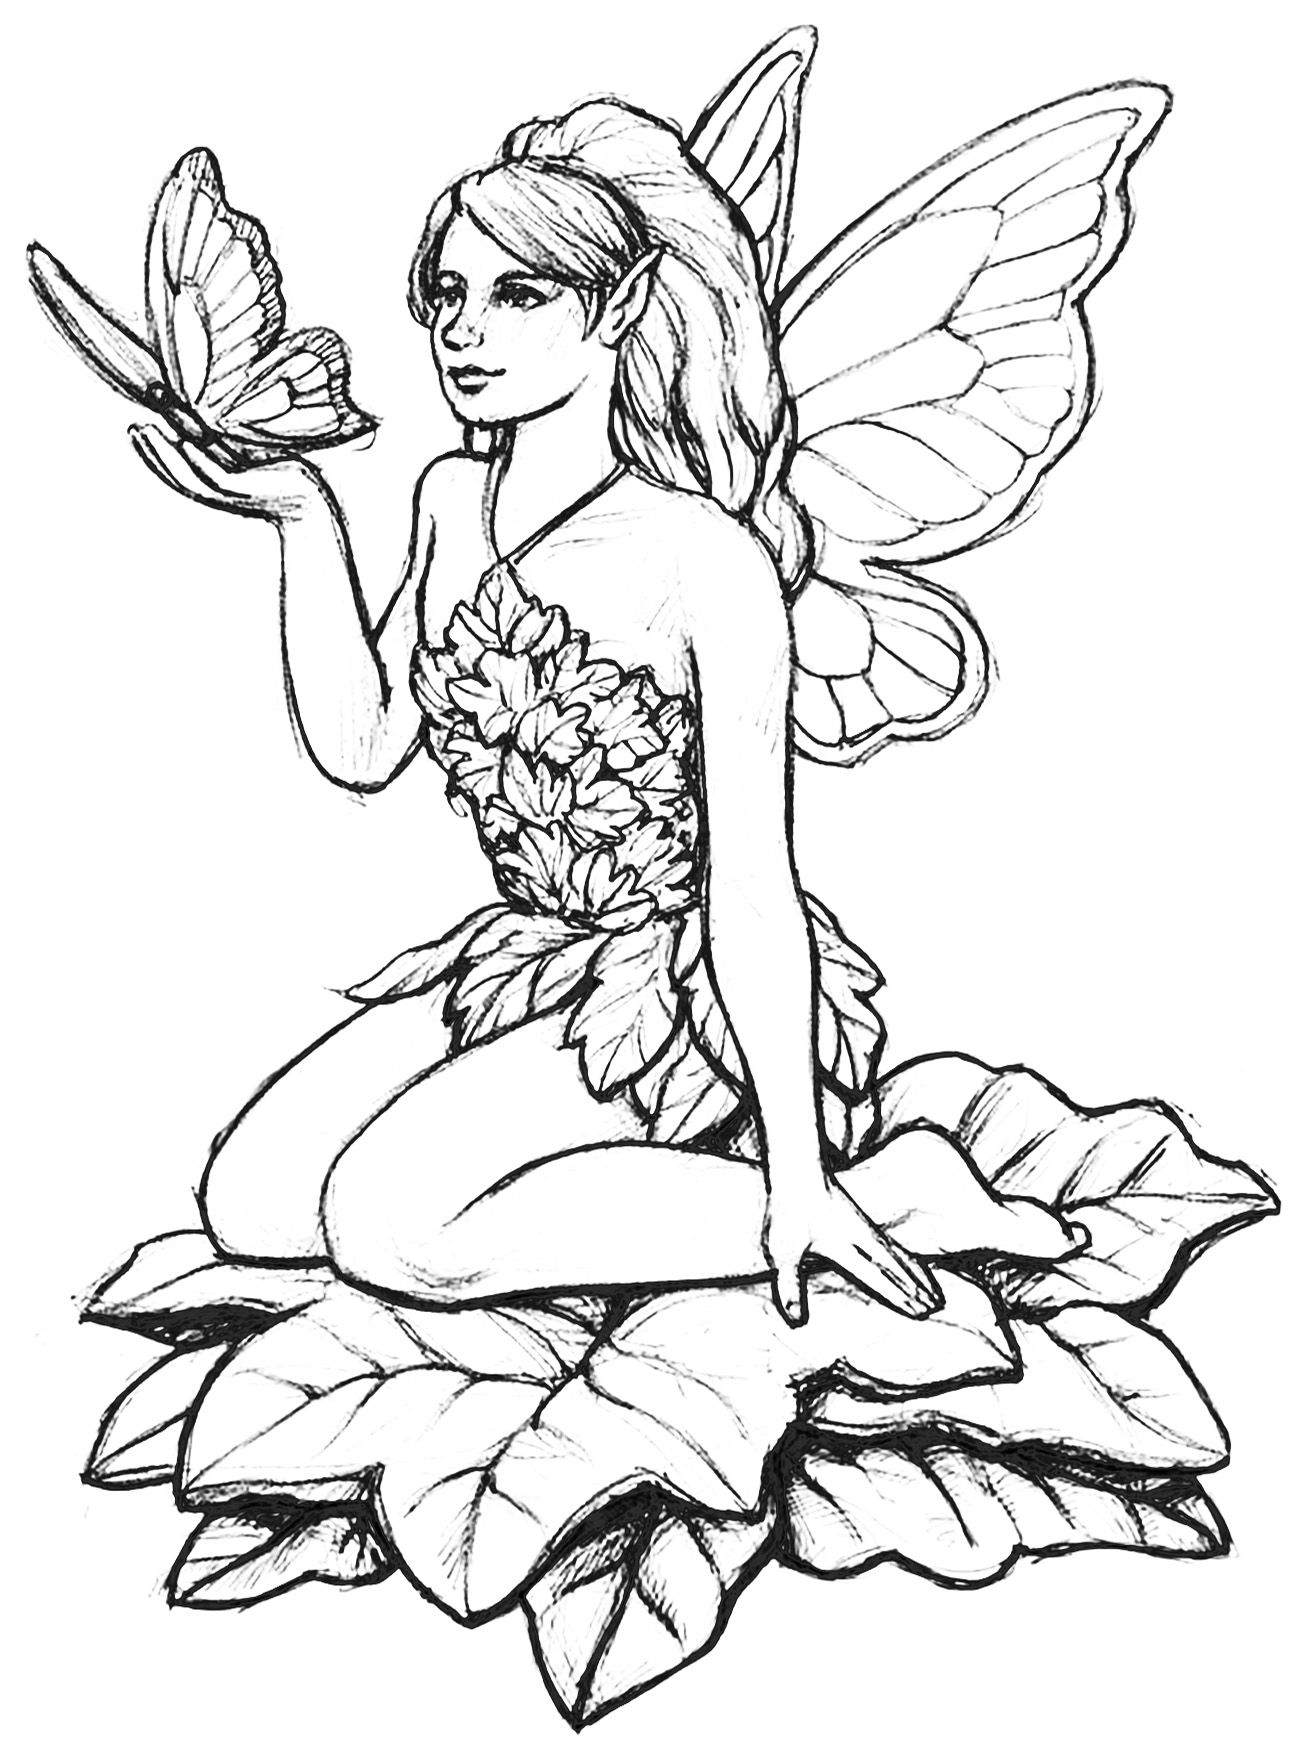 colouring in pictures for girls fairy coloring pages for adults best coloring pages for kids girls pictures colouring for in